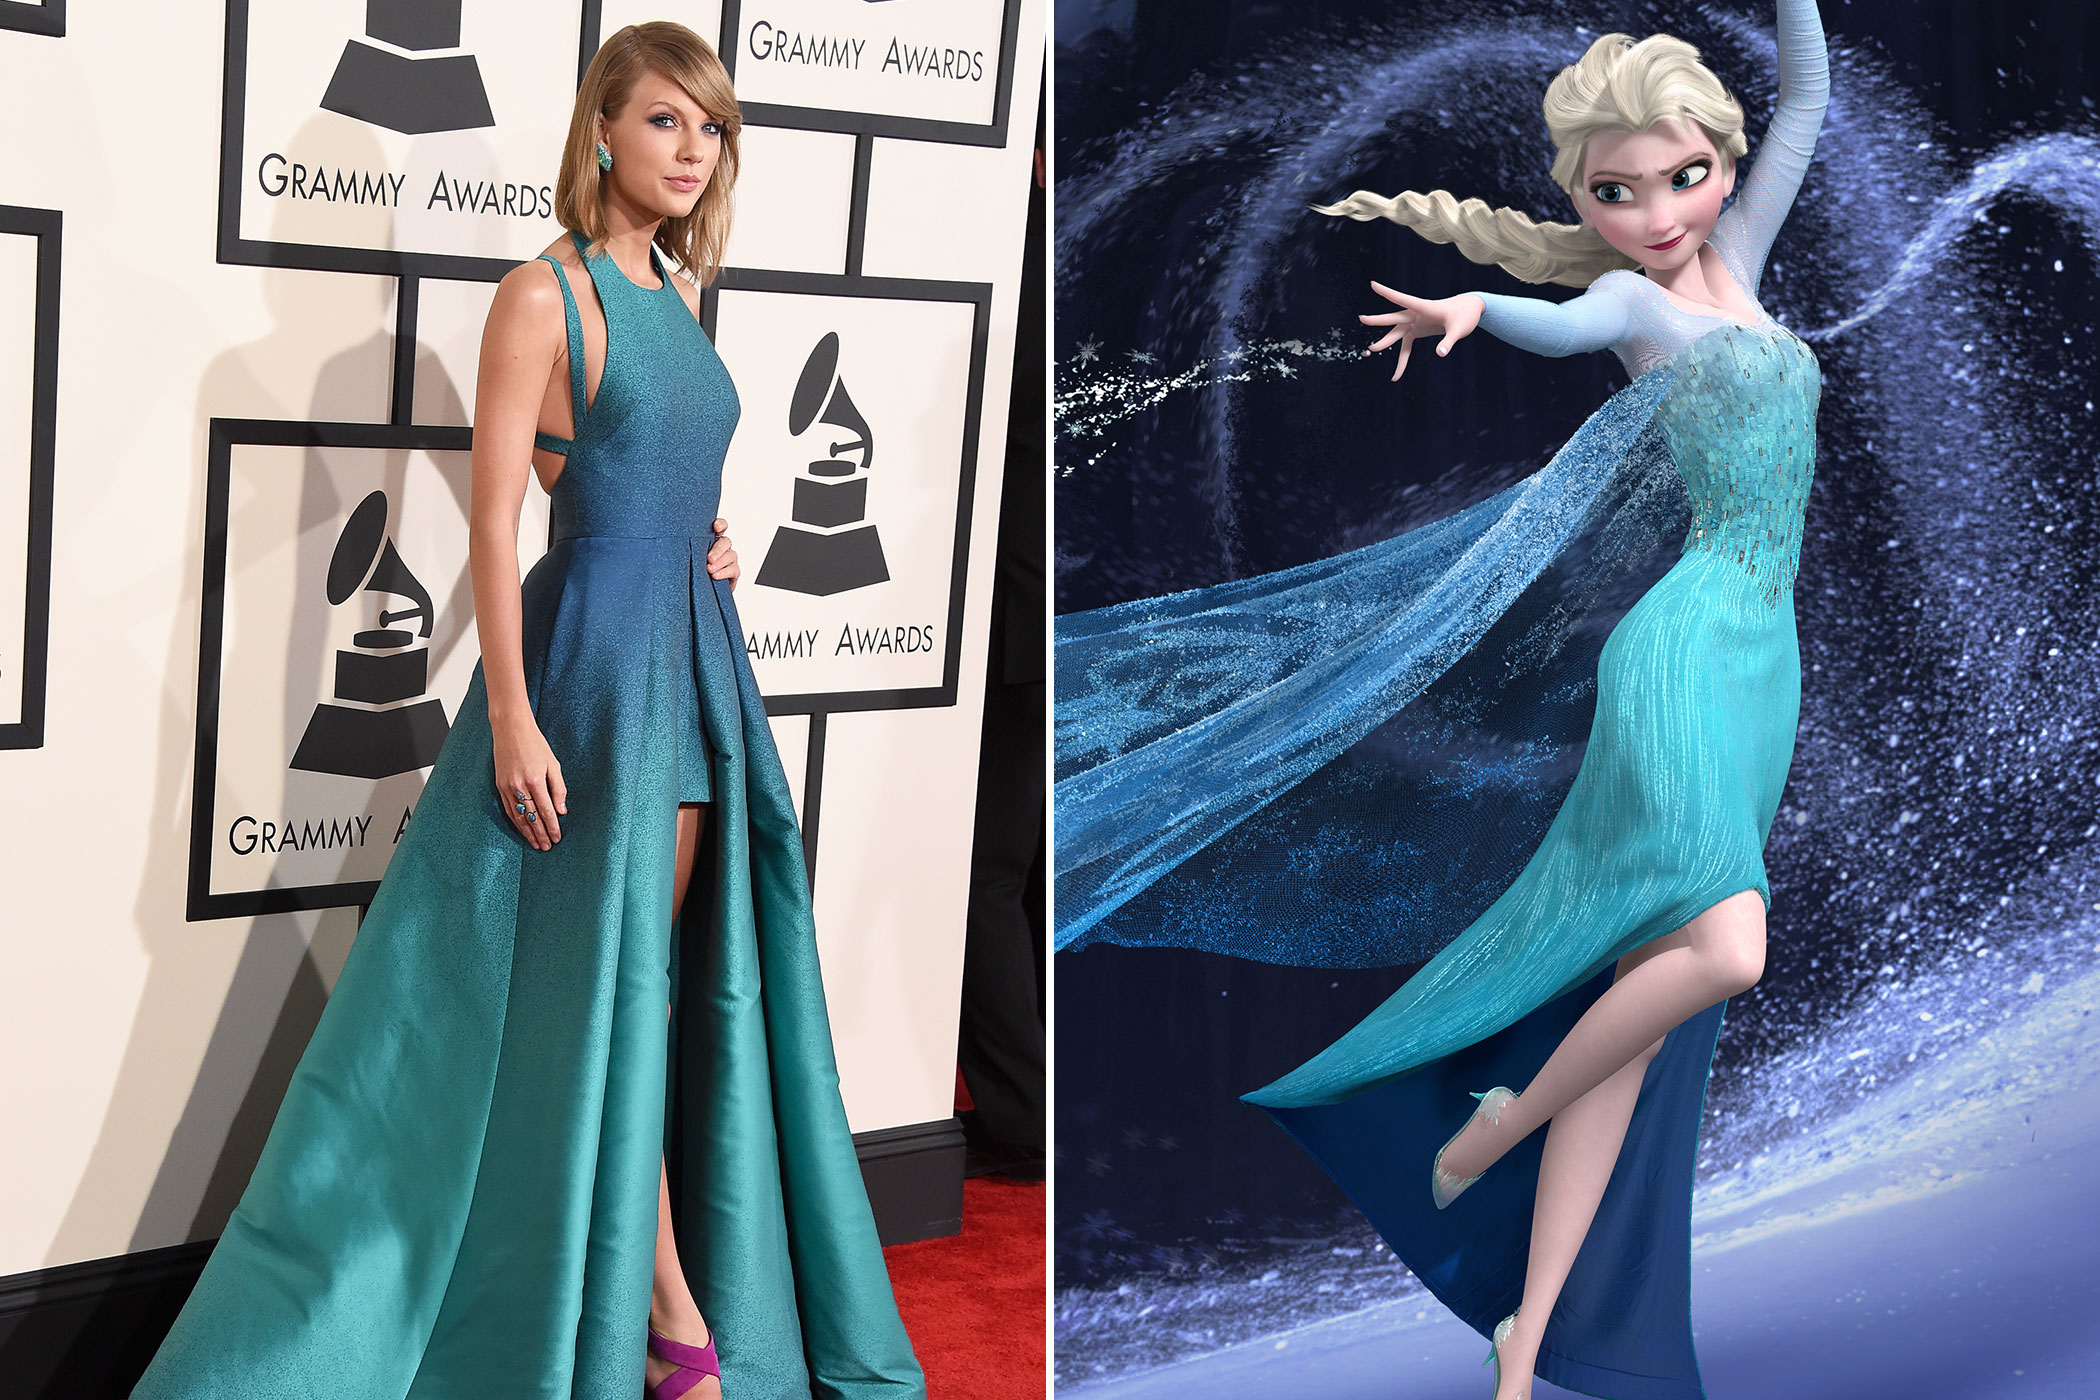 From left: Taylor Swift at the 2015 Grammys; Elsa from Frozen